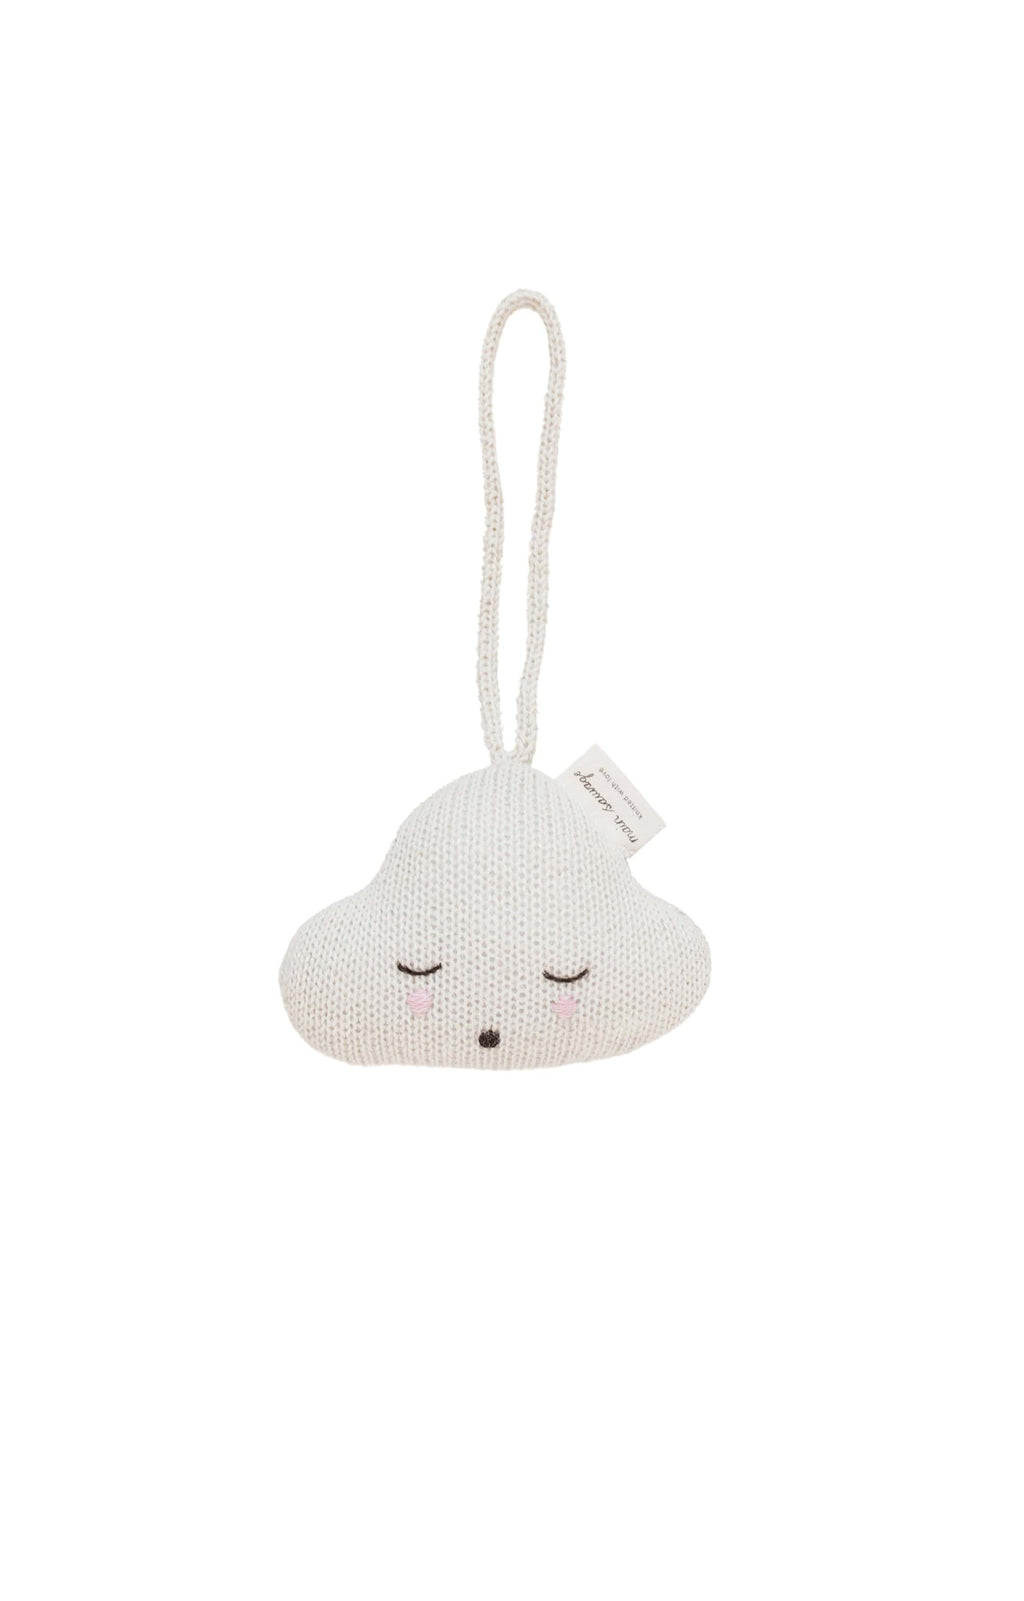 Main Sauvage cloud hanging rattle (PRE-ORDER AUG)